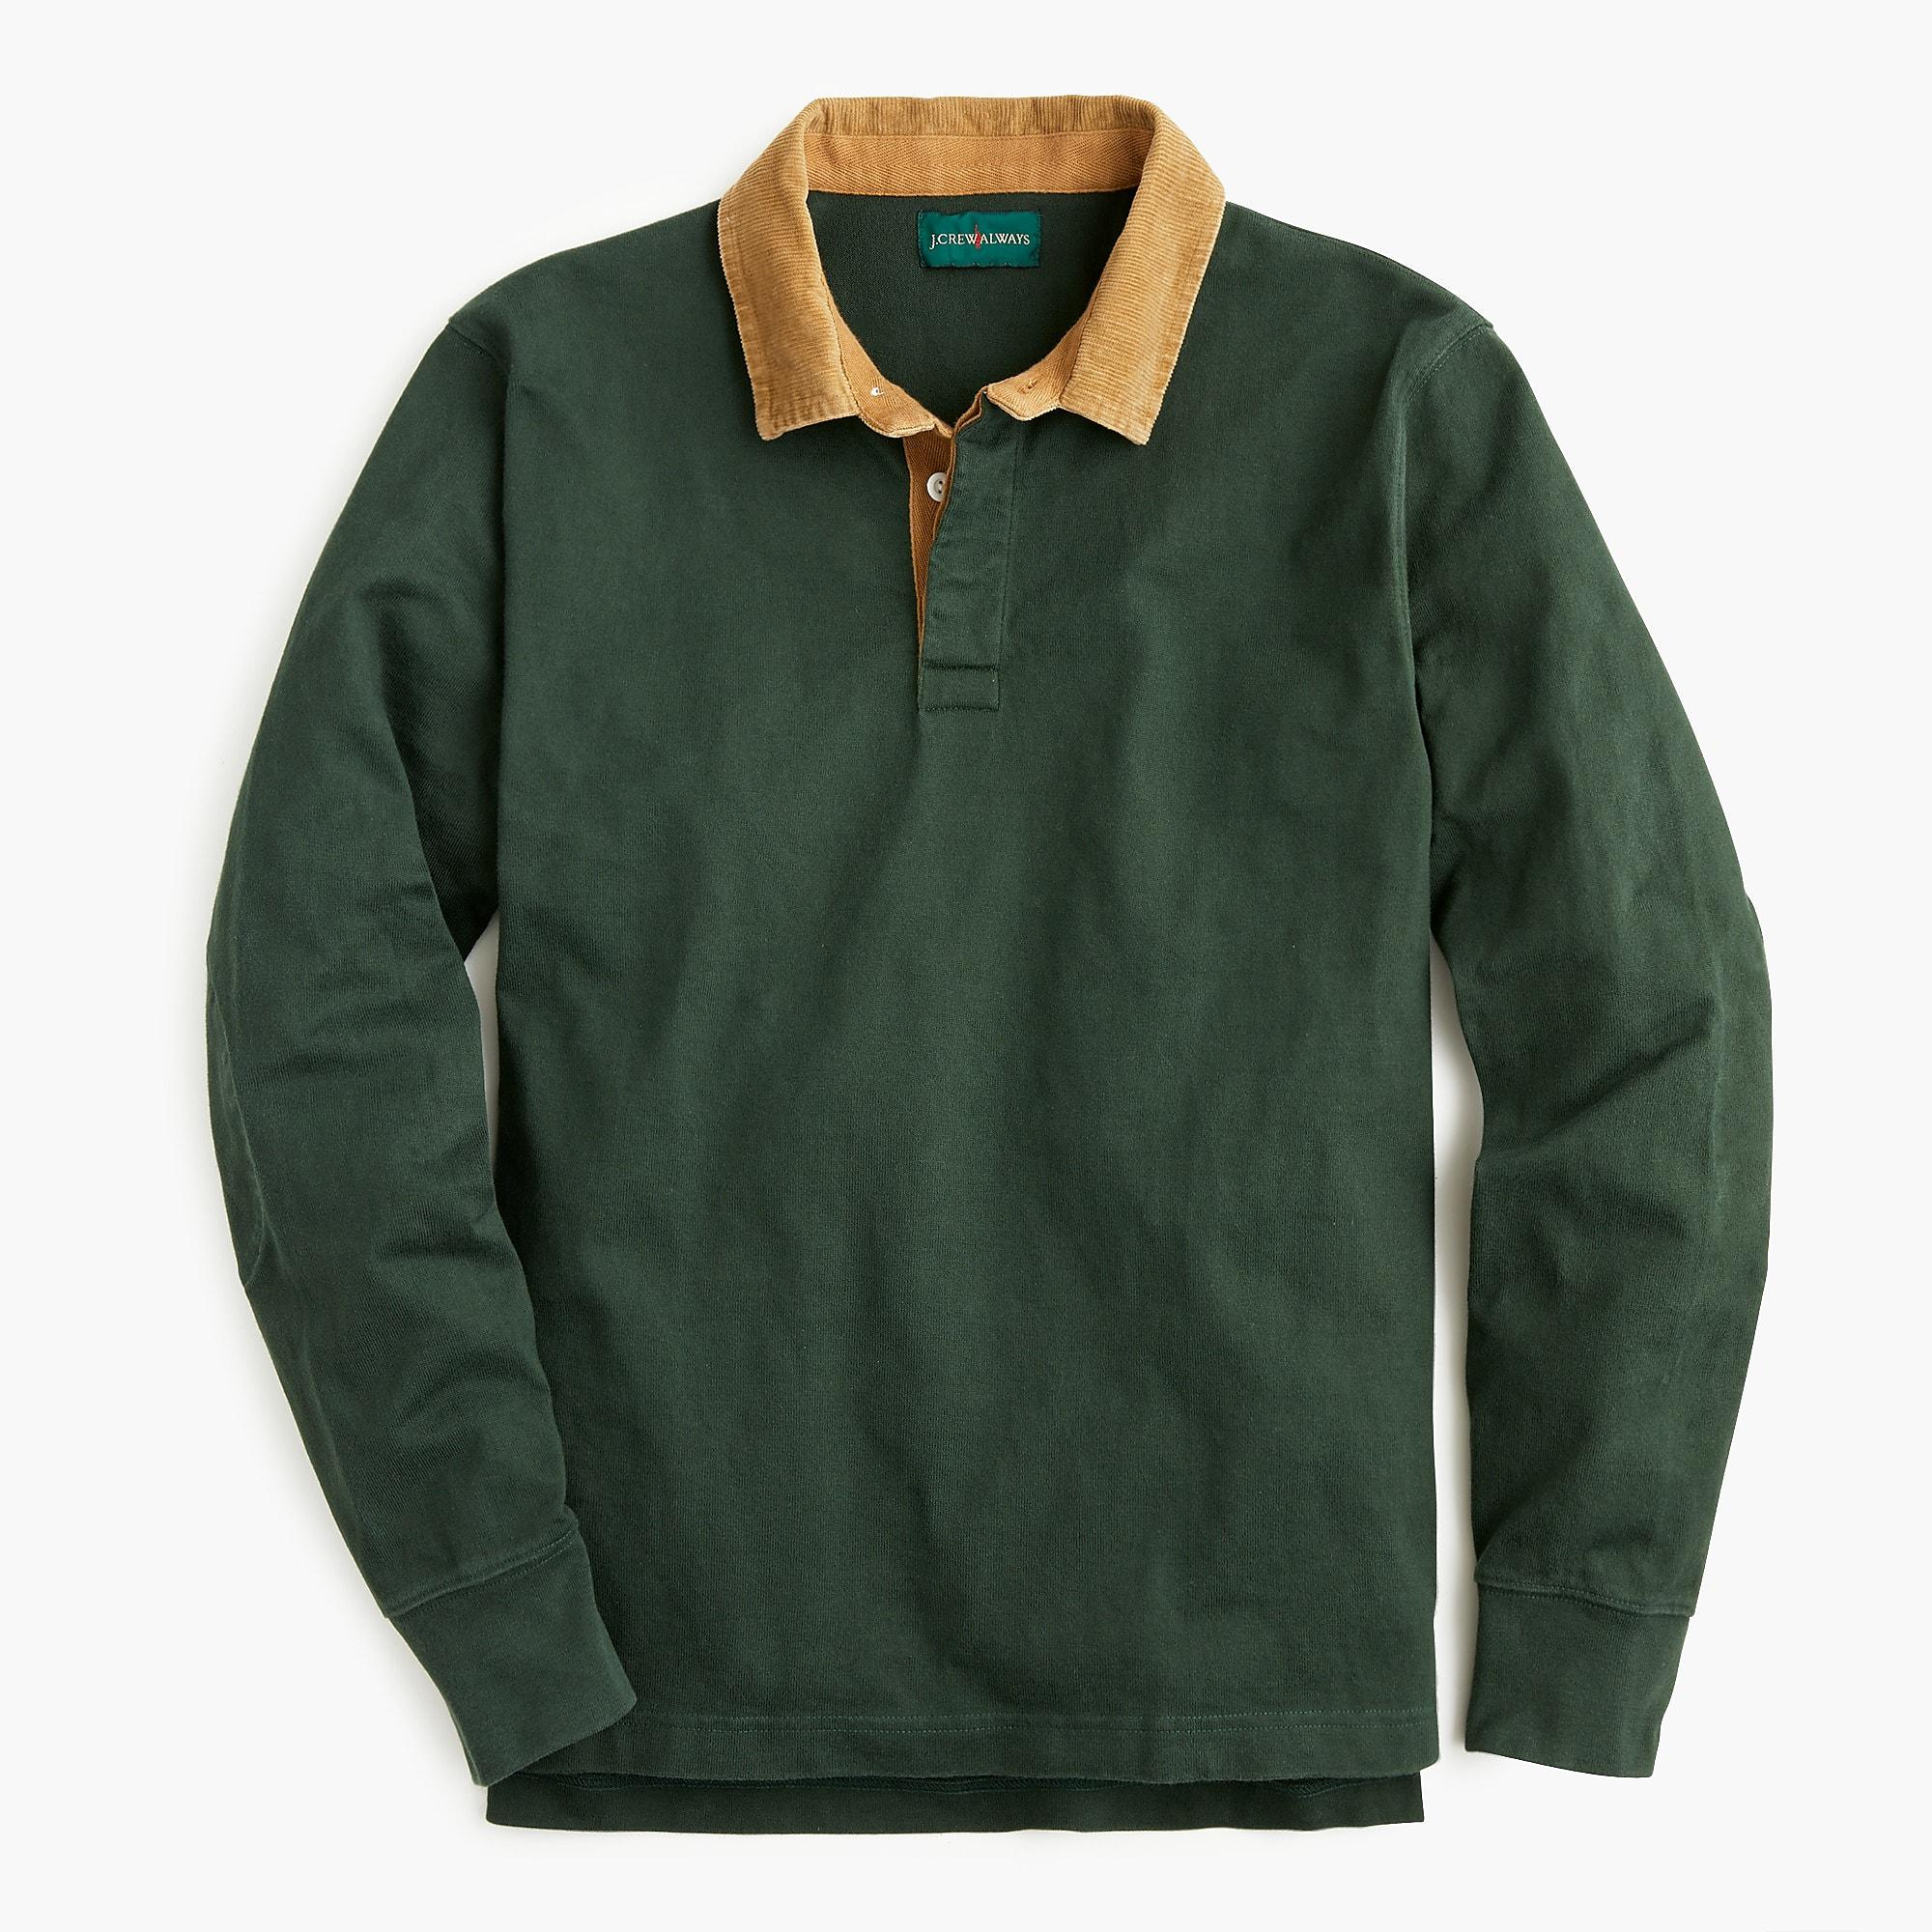 5a1b4ad4a7a J.Crew 1984 Corduroy Collar Rugby Shirt in Green for Men - Lyst